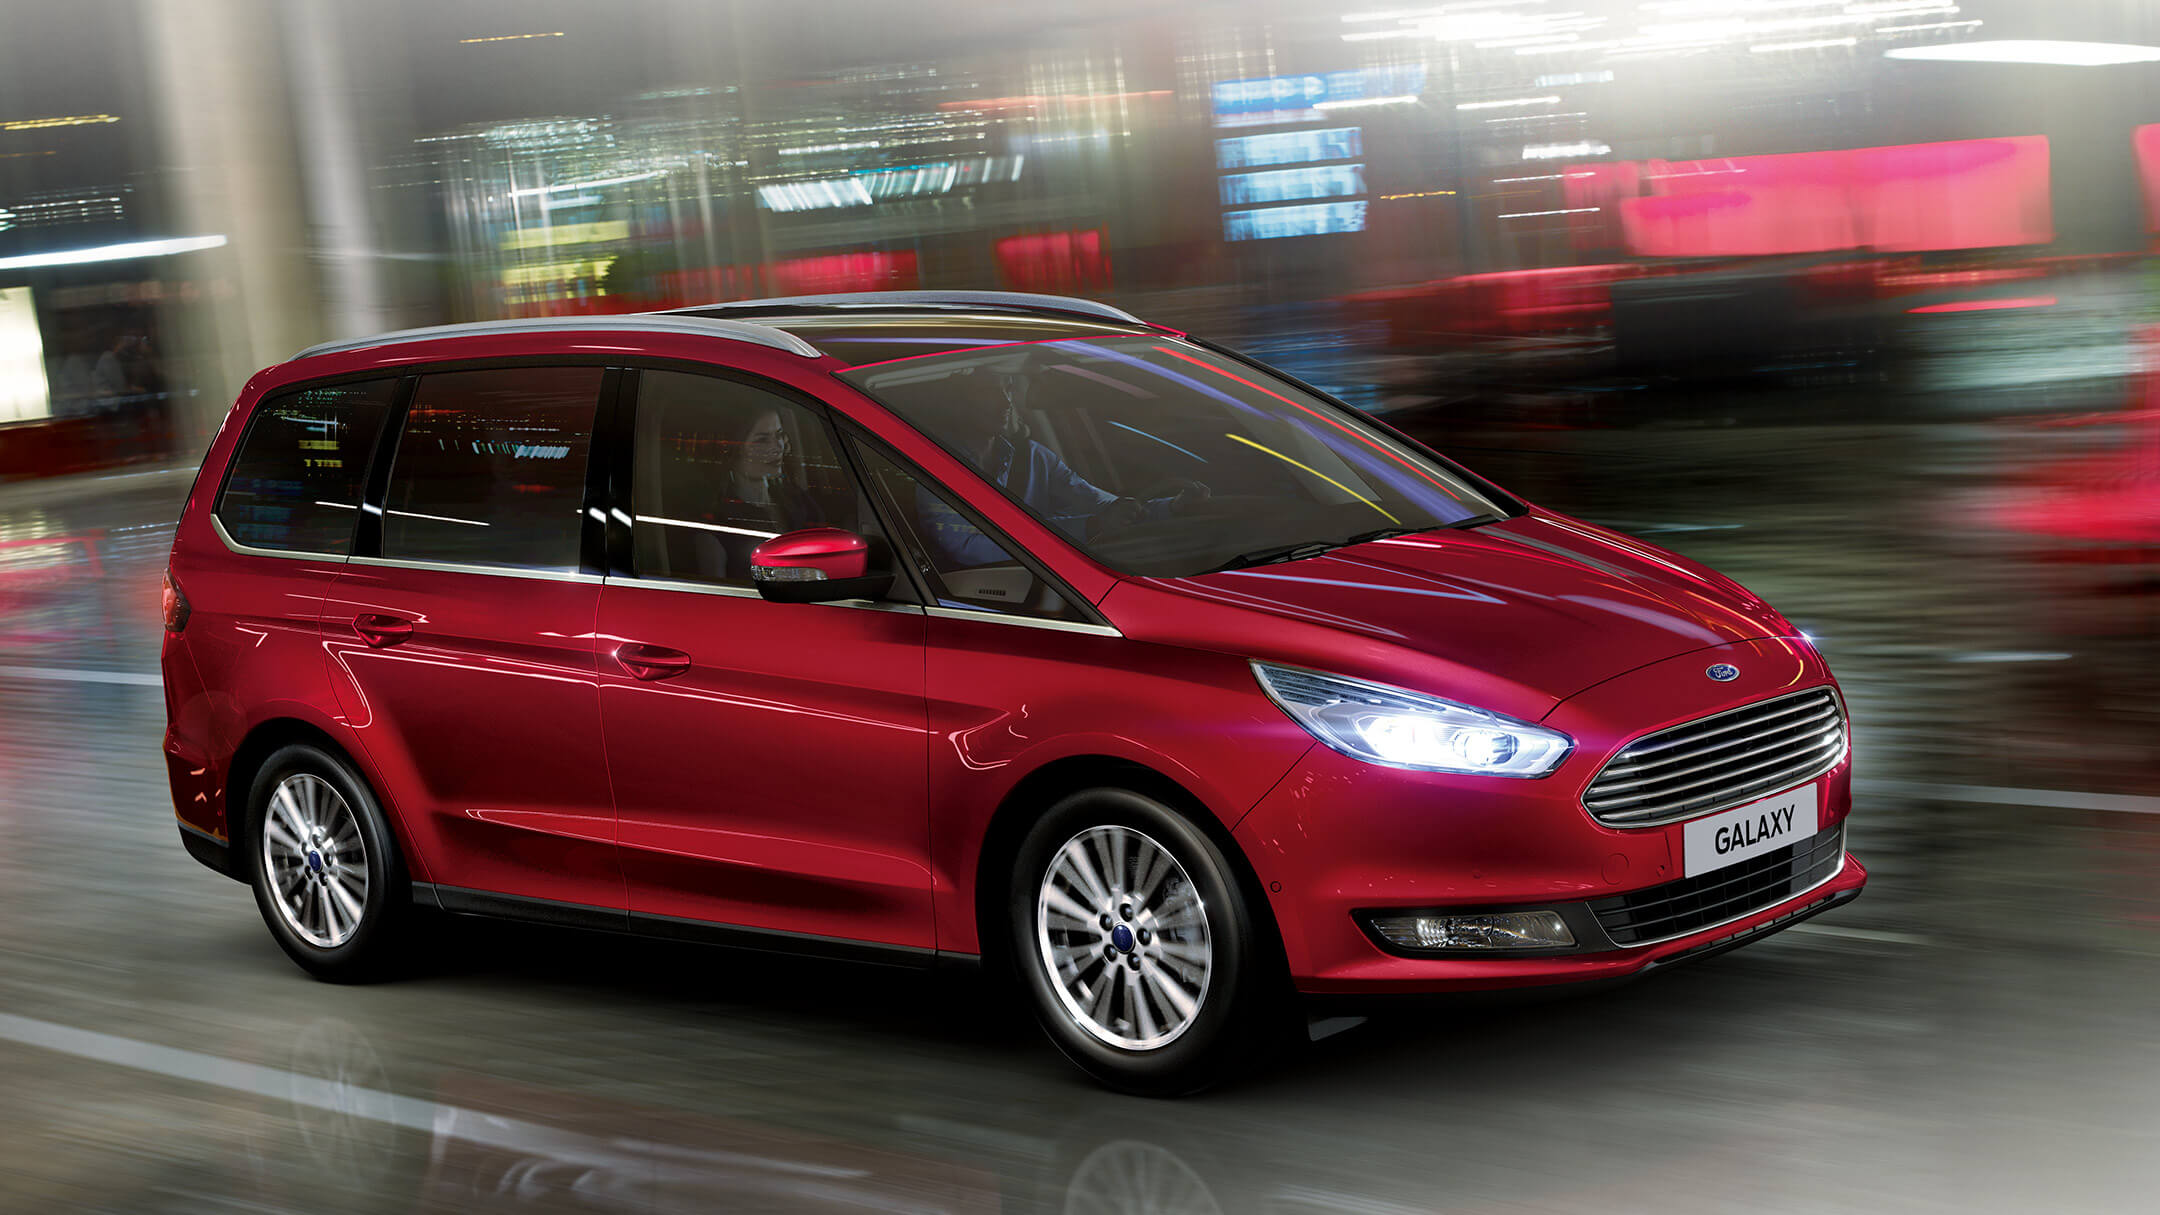 ford galaxy leasing f r 251 euro im monat netto inkl service leasing. Black Bedroom Furniture Sets. Home Design Ideas